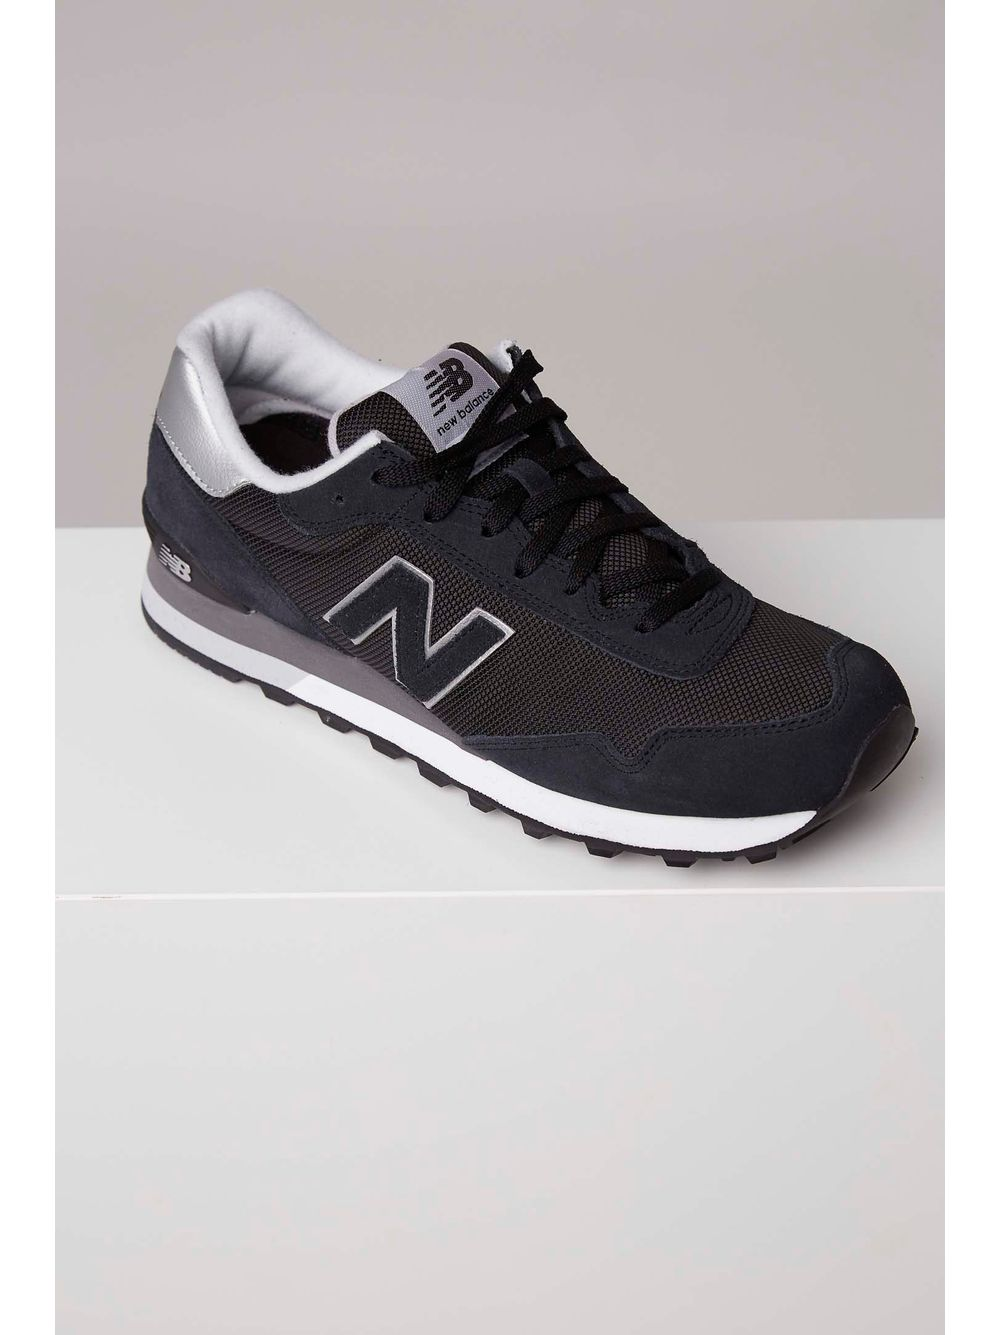 Tênis New Balance Ml515 Preto - pittol 667d55d80bdec